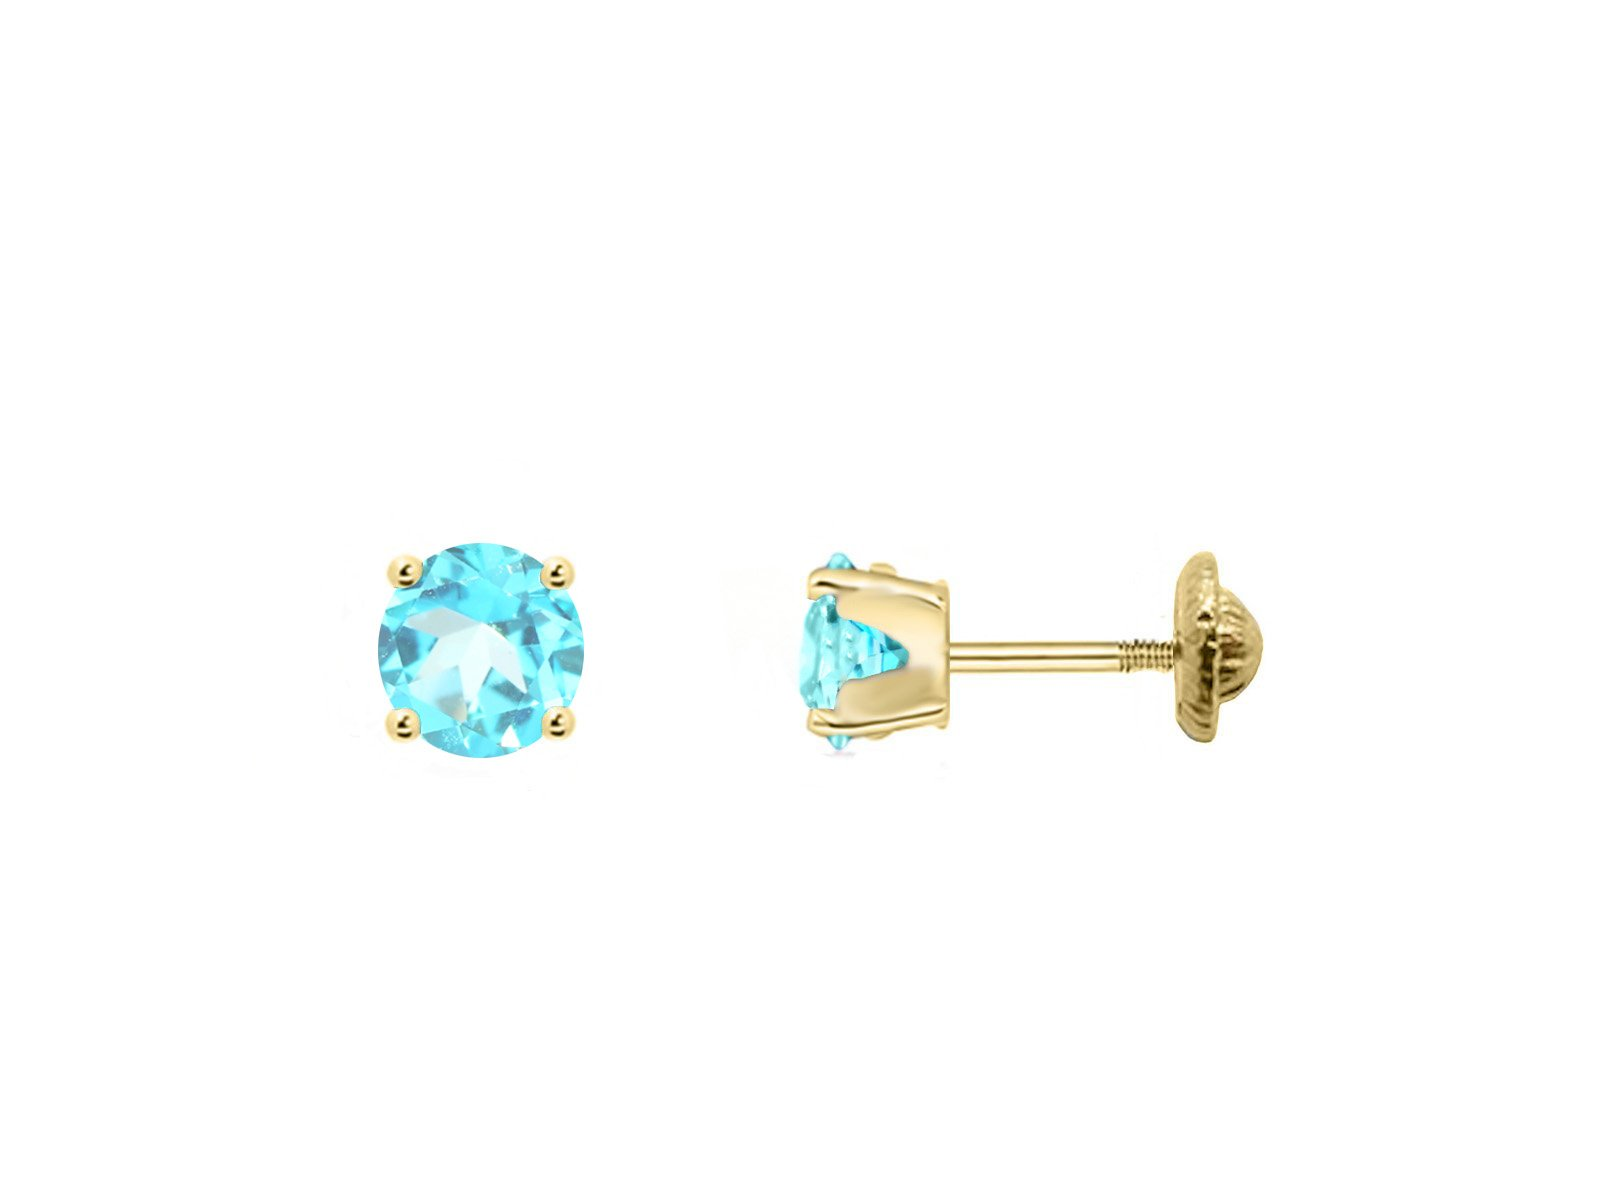 BecKids 18k Gold Mini Blue Topaz Stud Earrings, 3mm